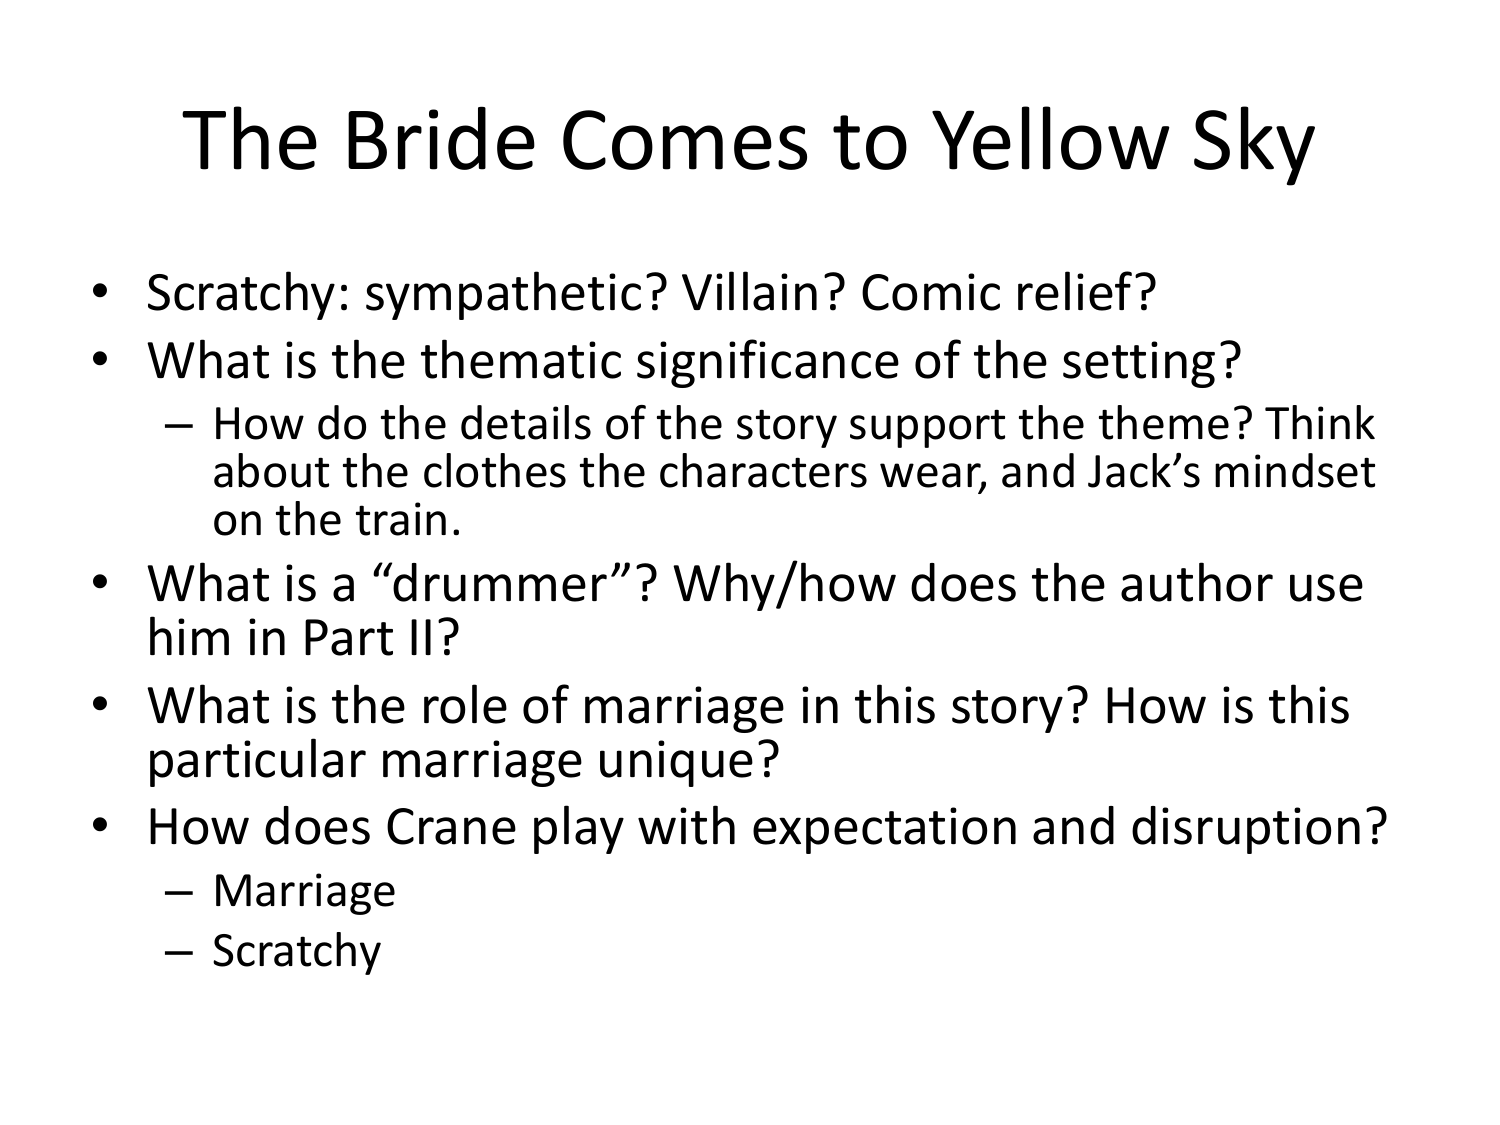 the bride comes to yellow sky setting